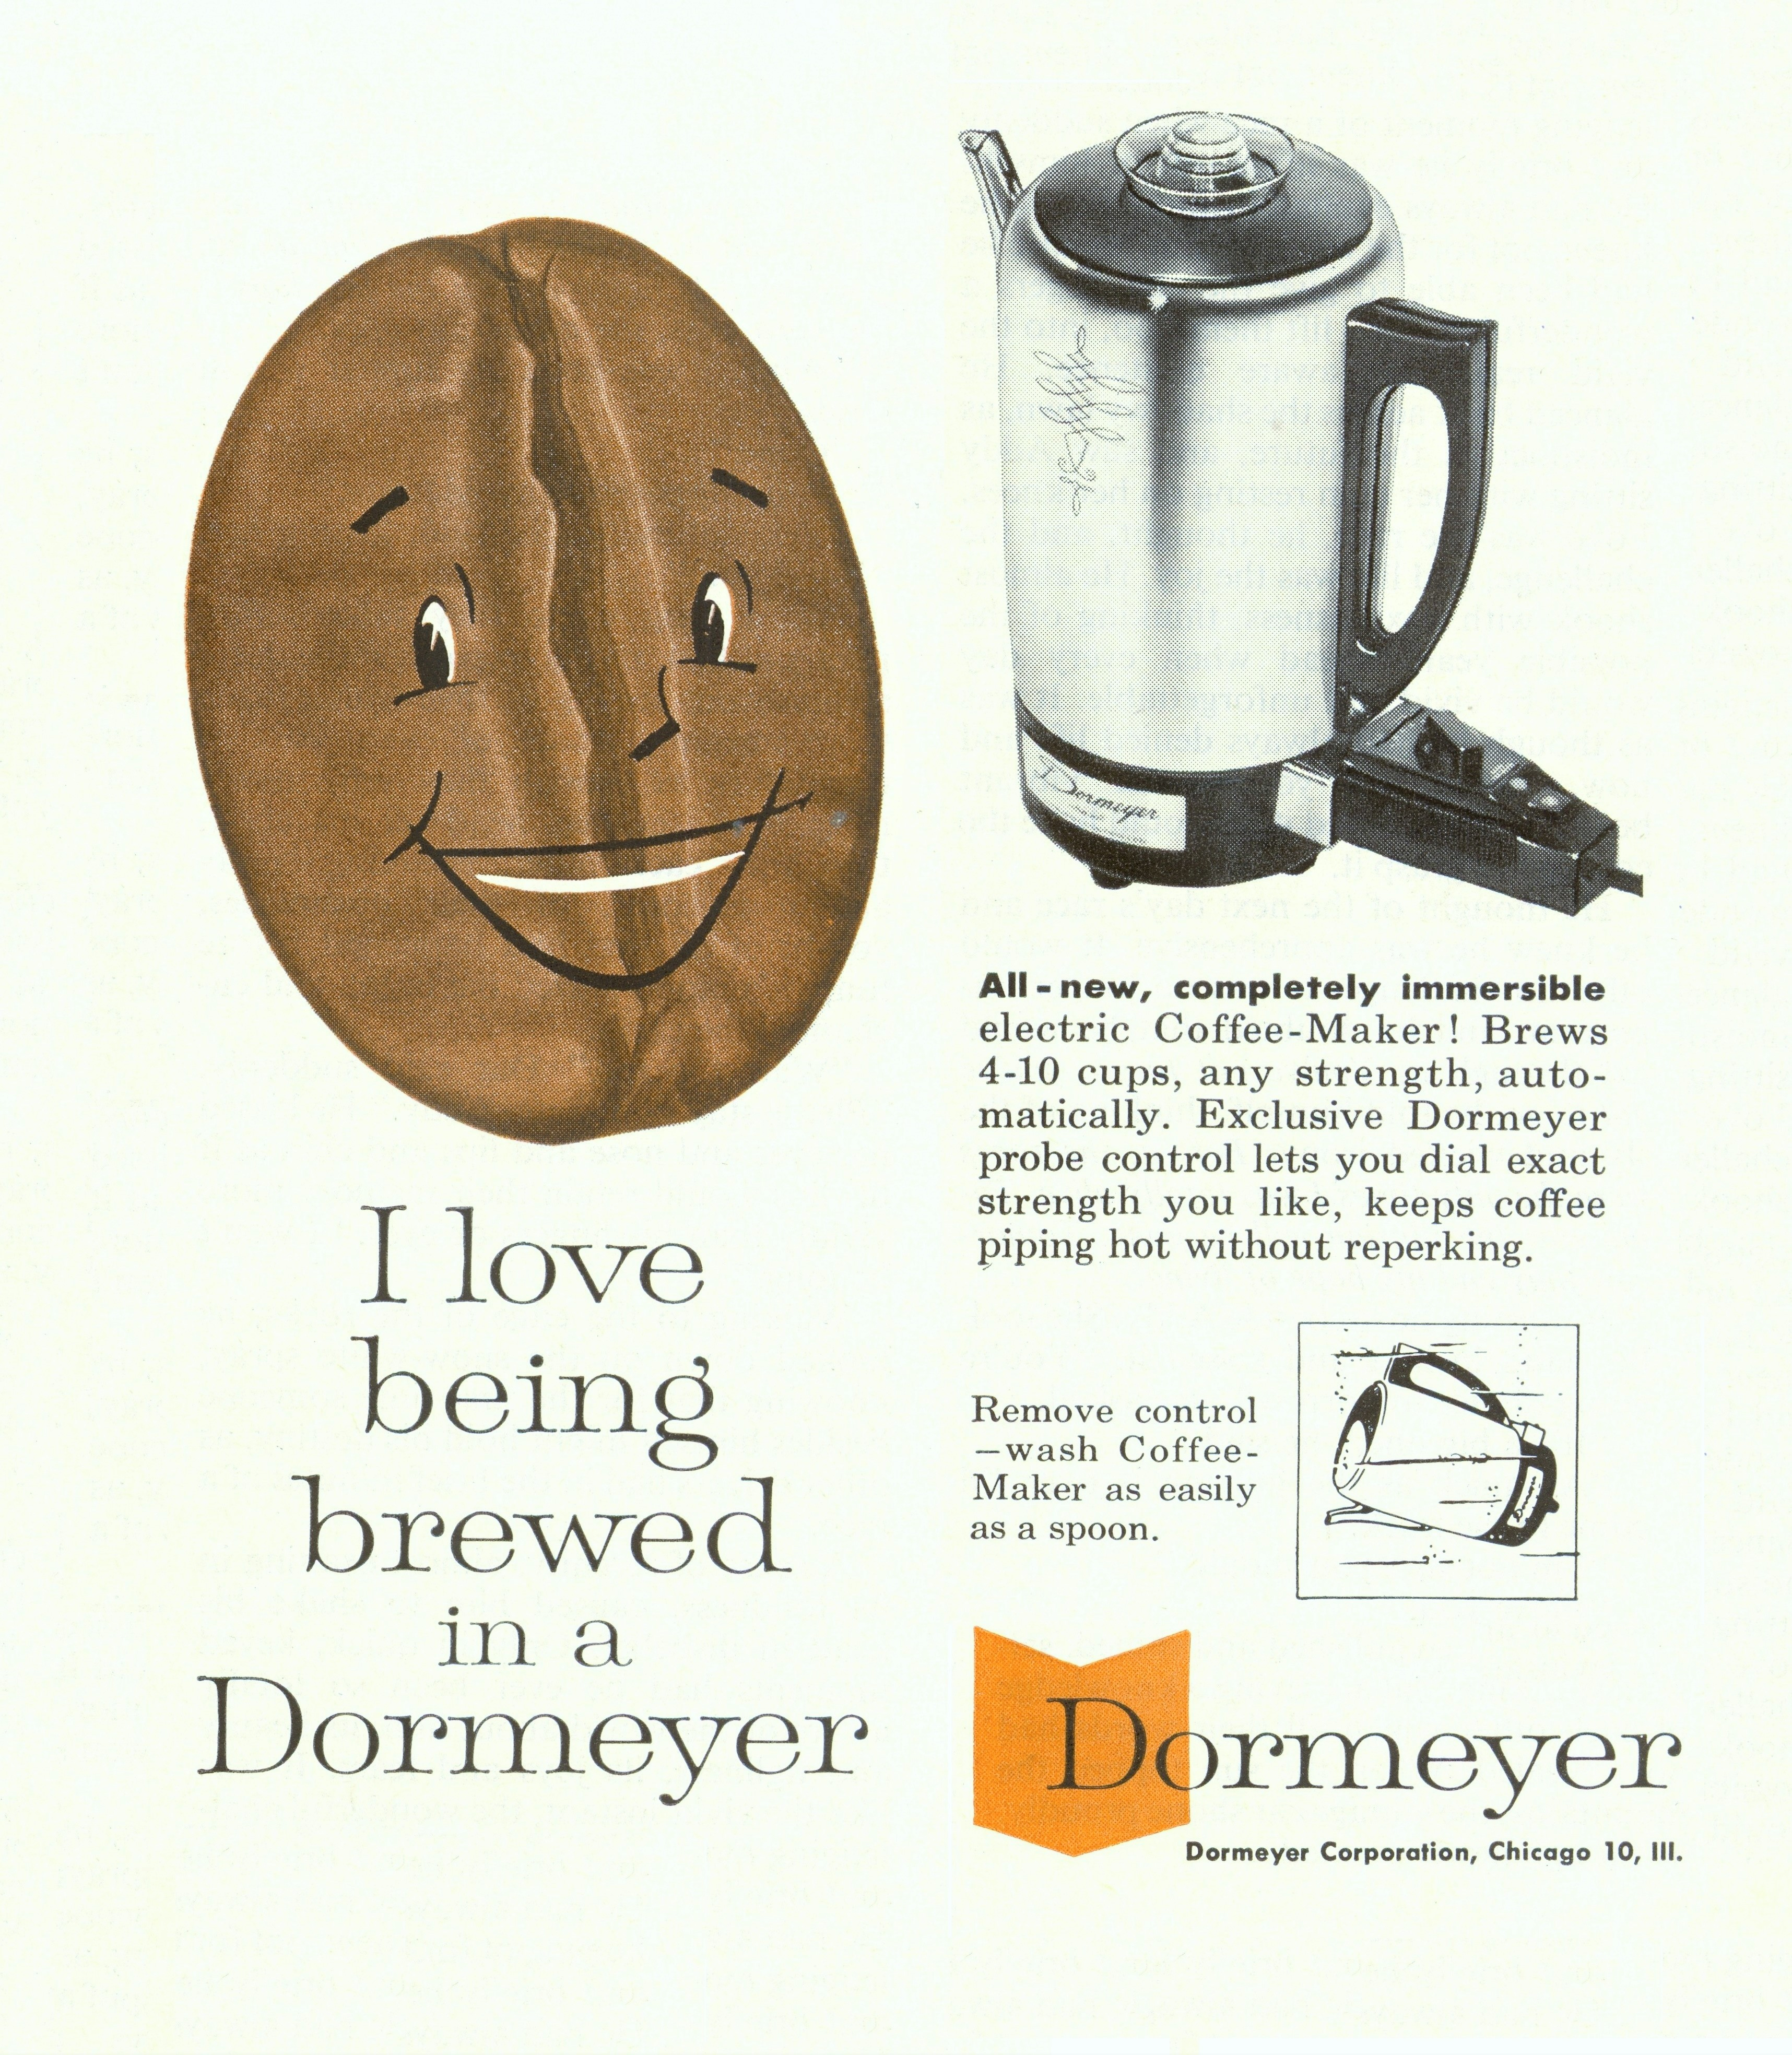 Dormeyer Corporation - published in The Saturday Evening Post - October 1959